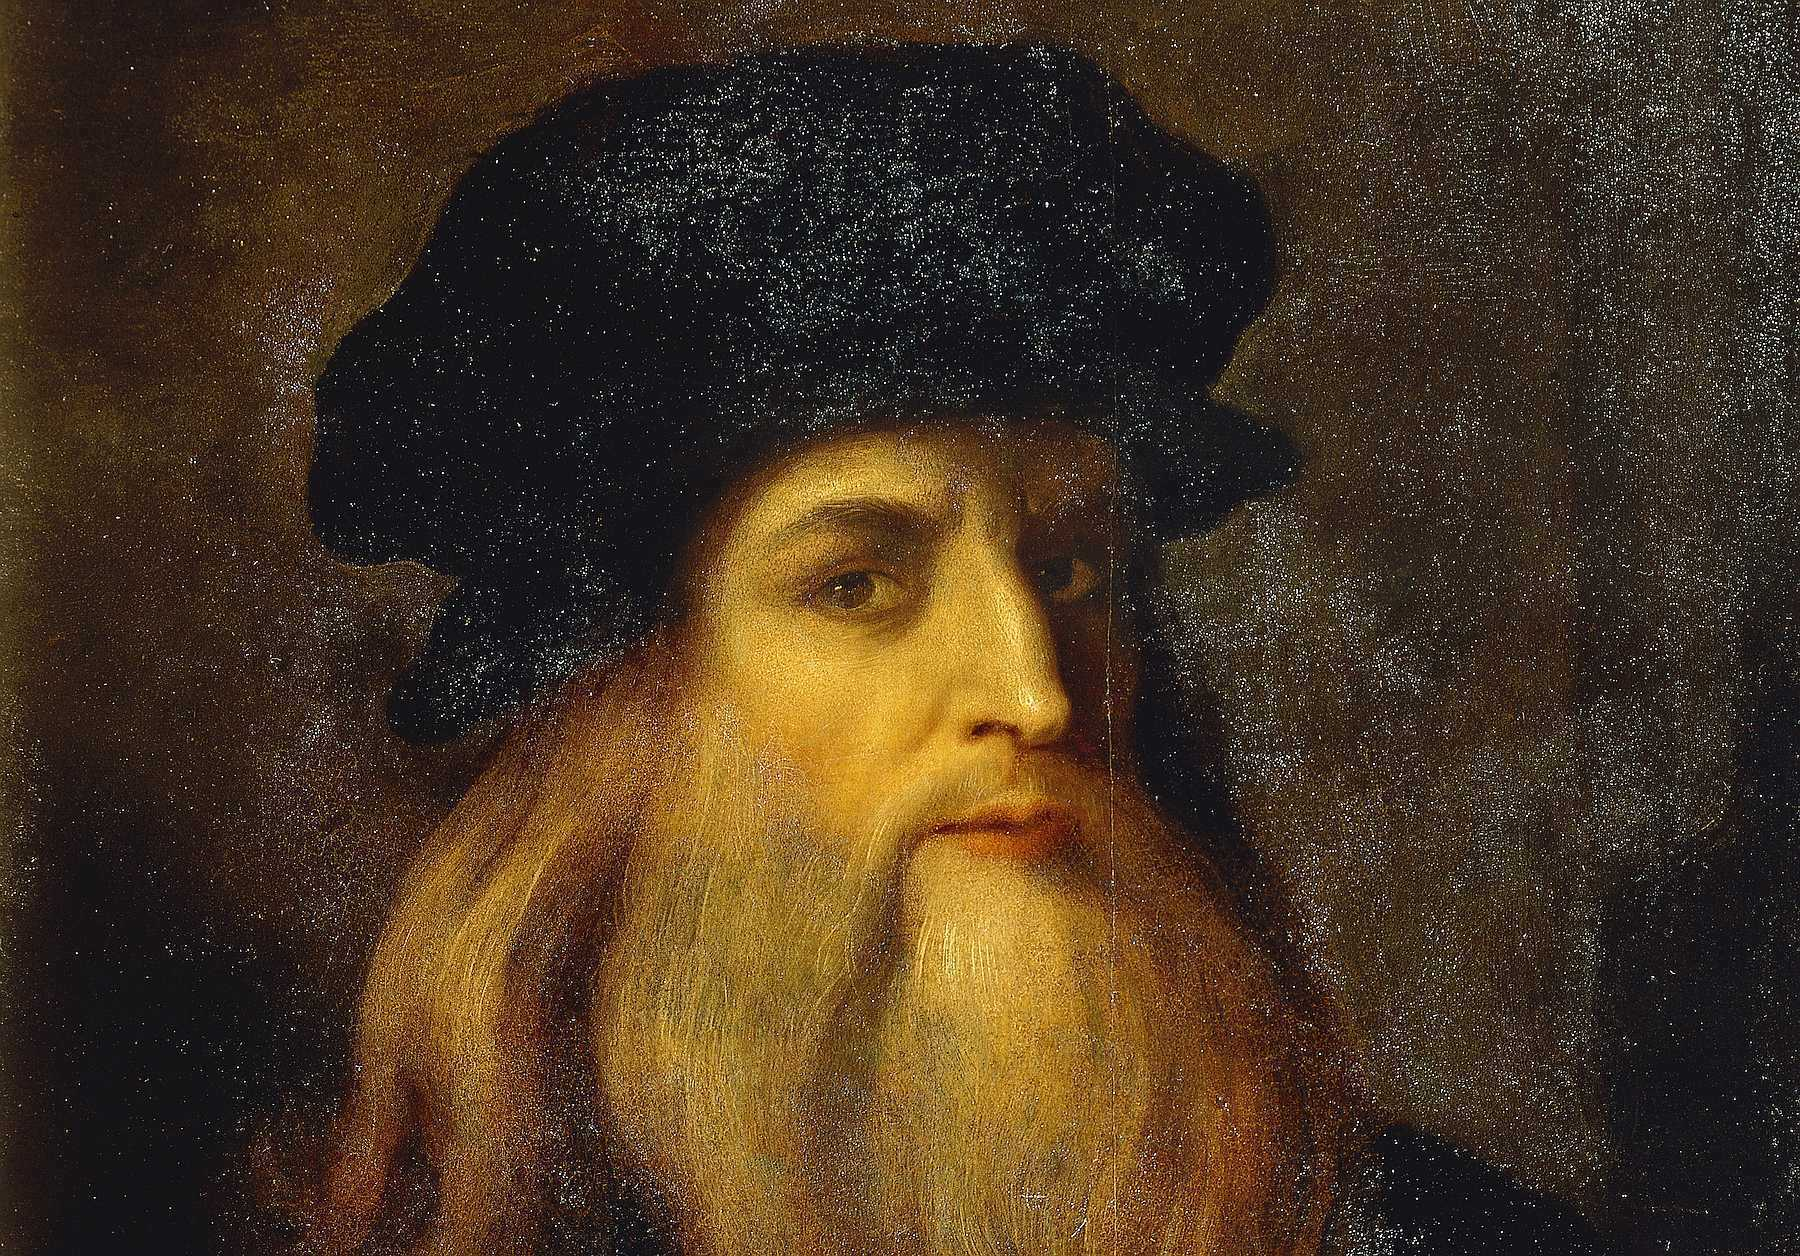 ITALY - APRIL 09: Florence, Galleria Degli Uffizi (Uffizi Gallery) Presumed self-portrait by Leonardo da Vinci (1452-1519), an Unknown Artist. (Photo by DeAgostini/Getty Images)